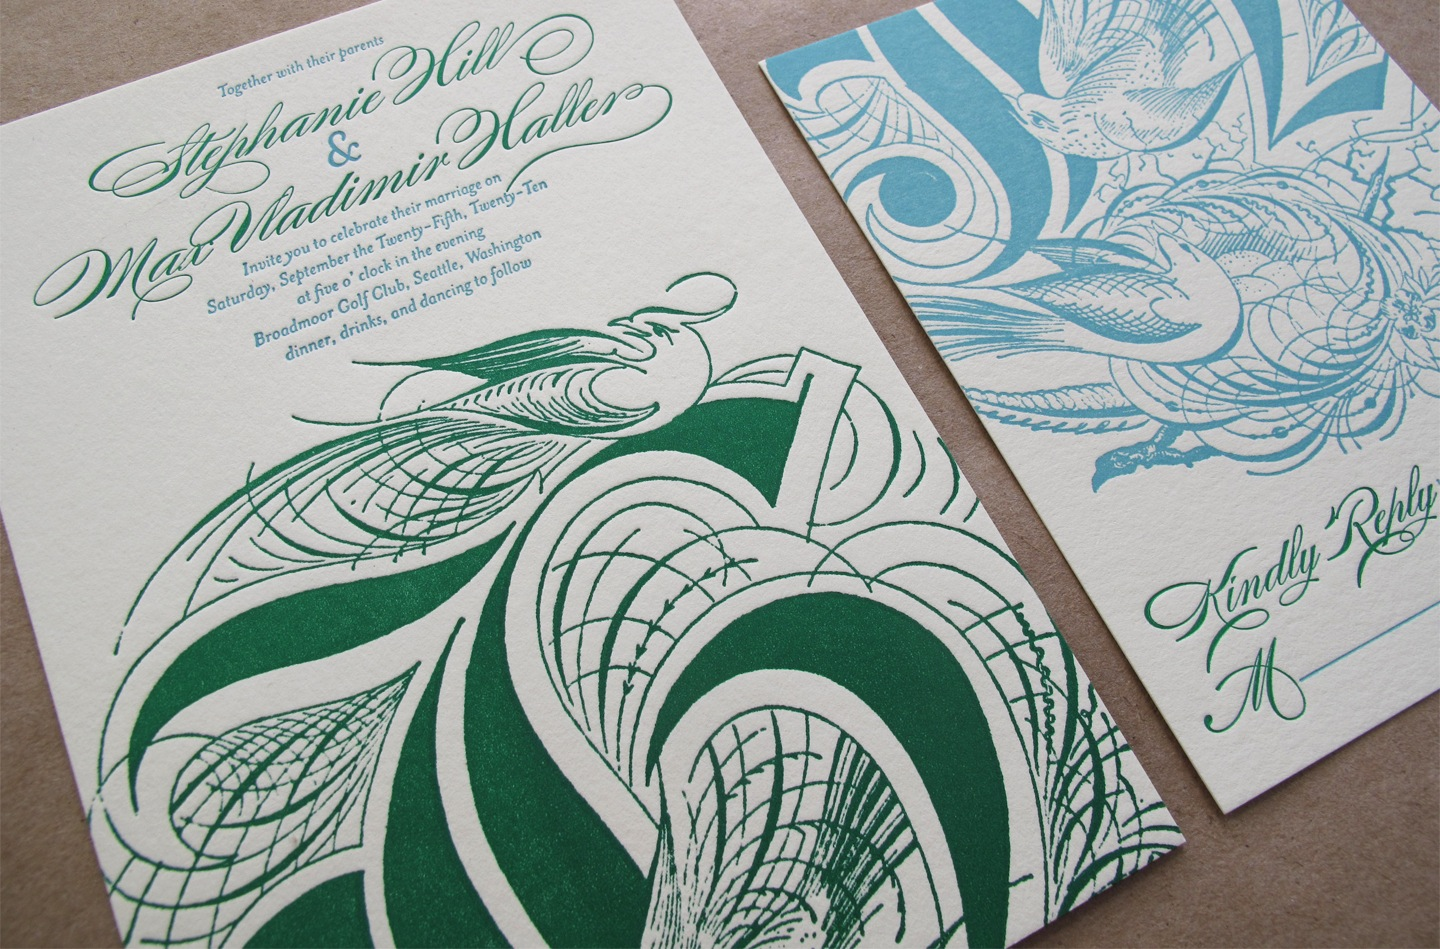 Elegant-letterpress-wedding-invitations-emerald-green-aqua.original